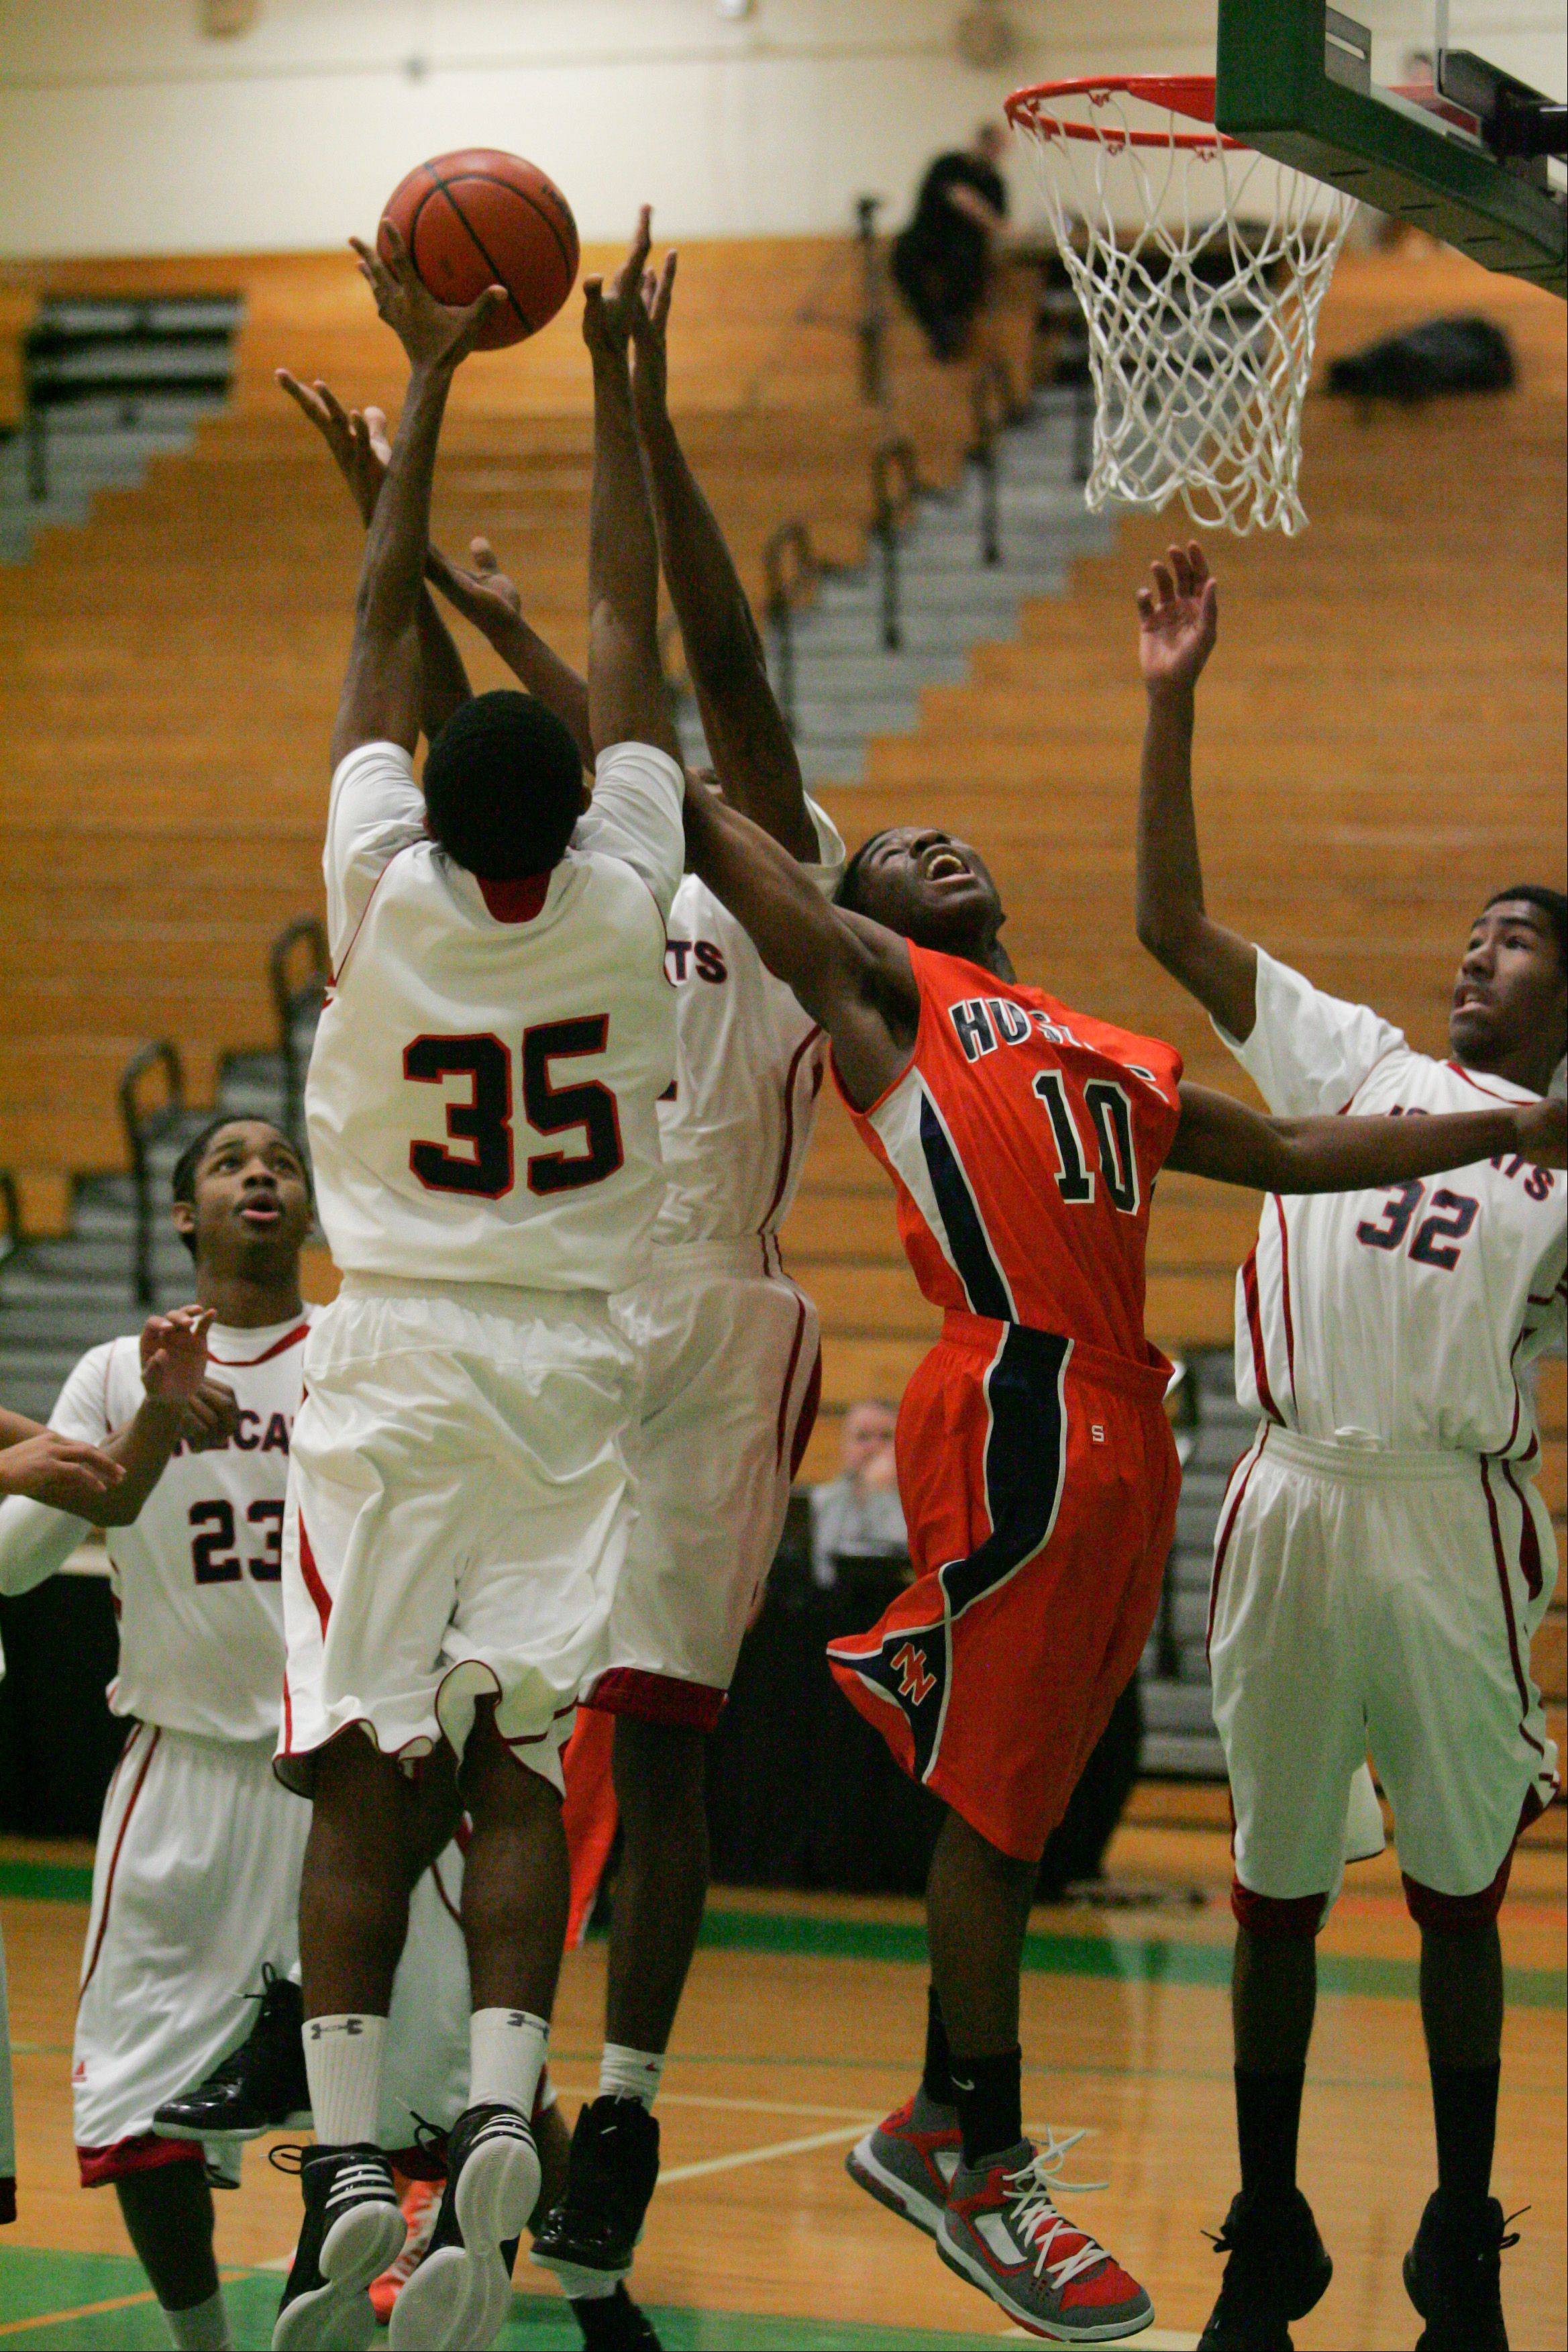 Images from the Naperville North vs. UIC College Prep boys basketball game in Elmhurst on Friday, Dec. 28, 2012.